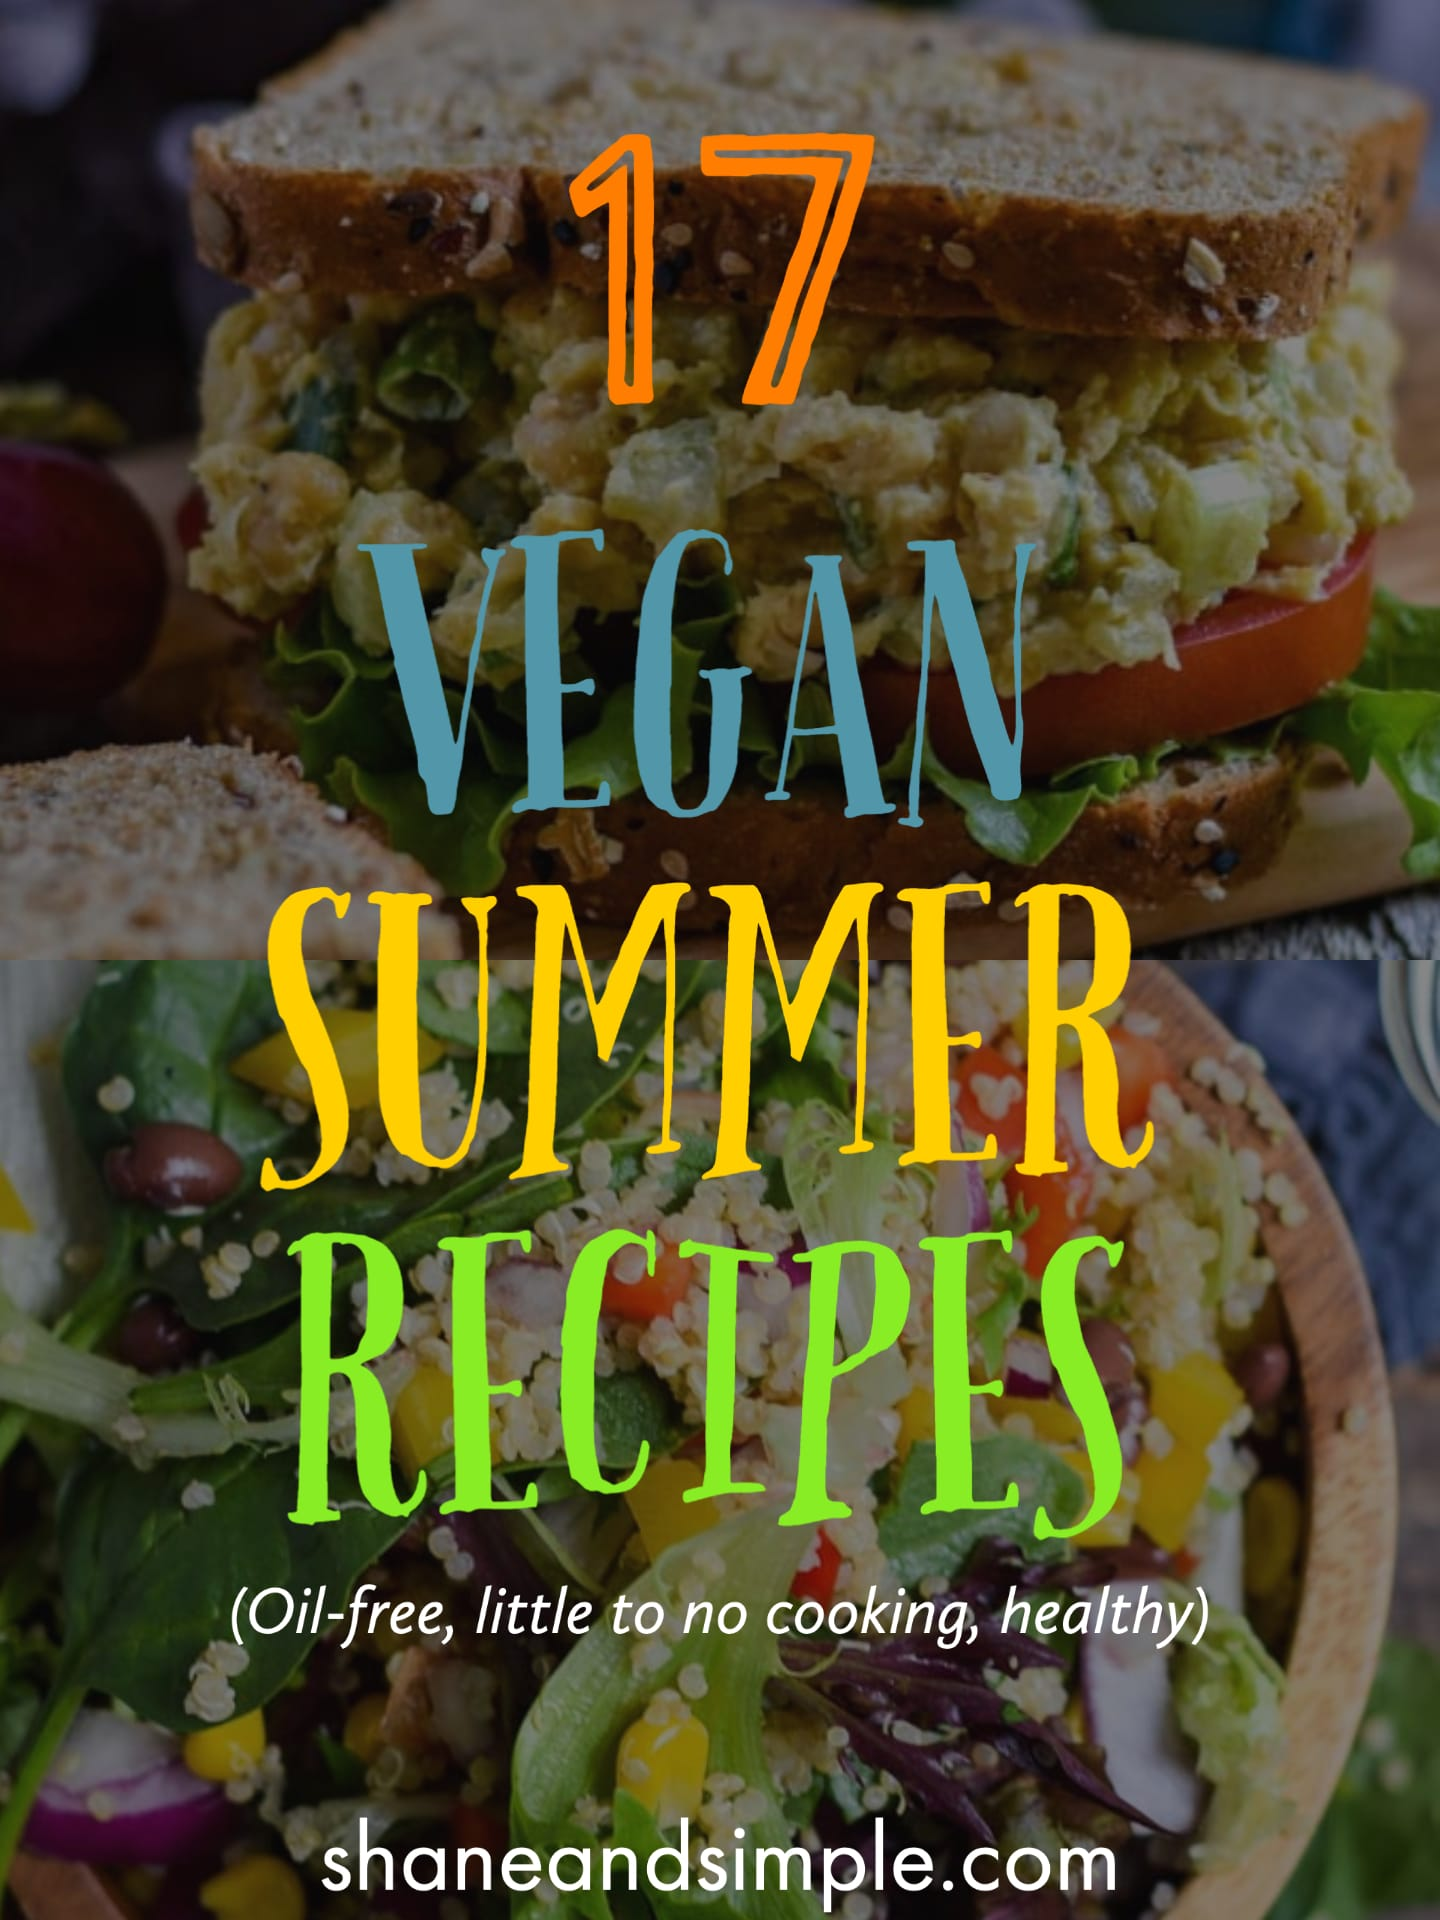 17 easy vegan recipes featured picture.